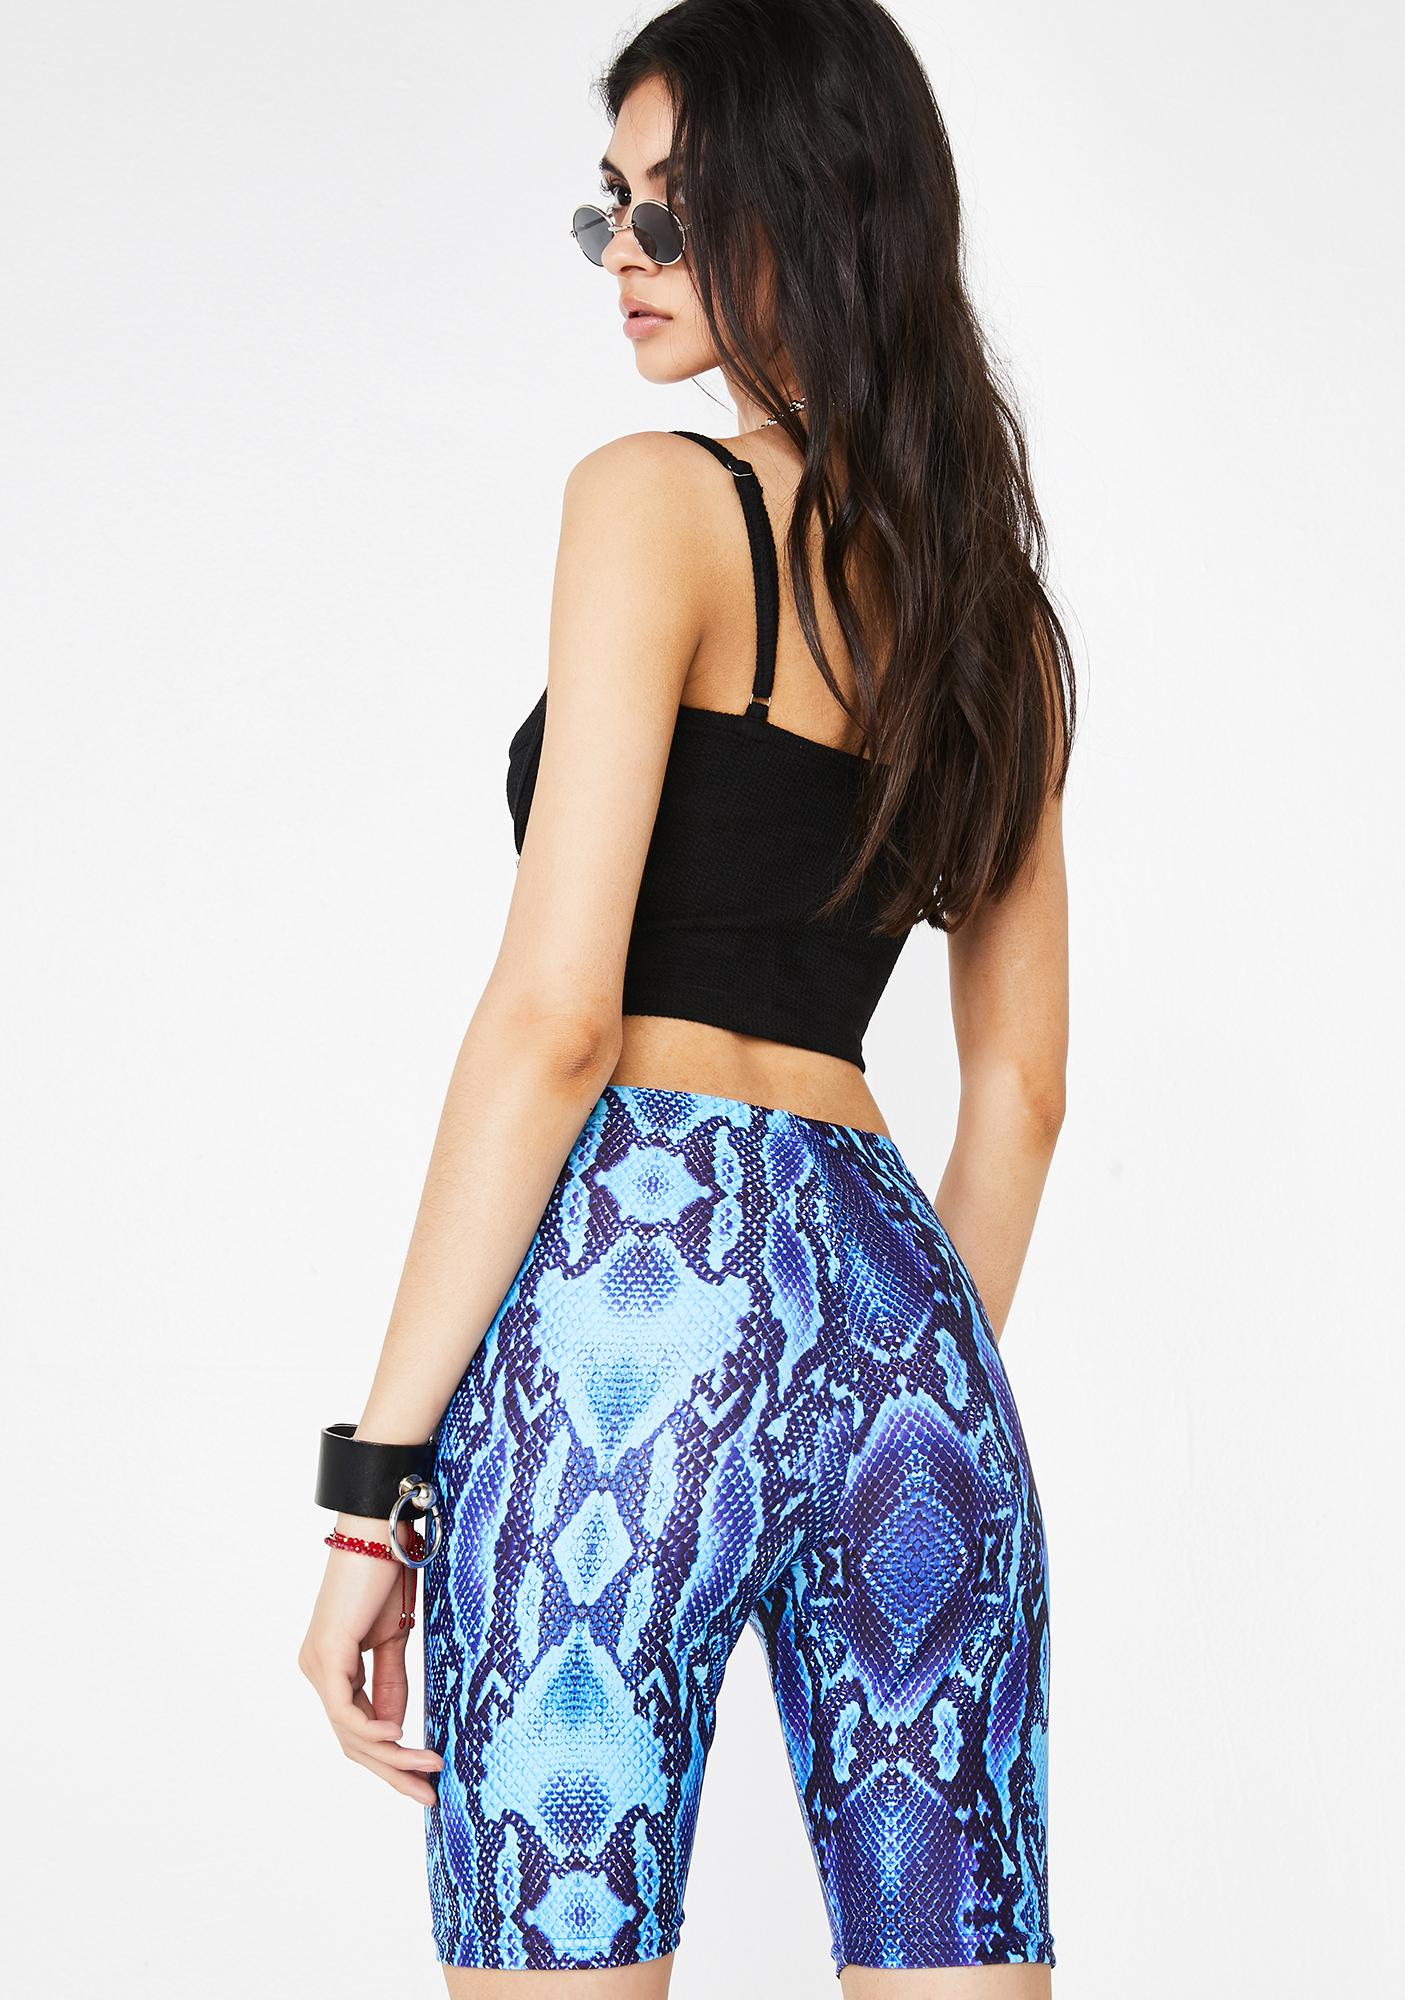 Get Crooked Blue Viper Biker Shorts